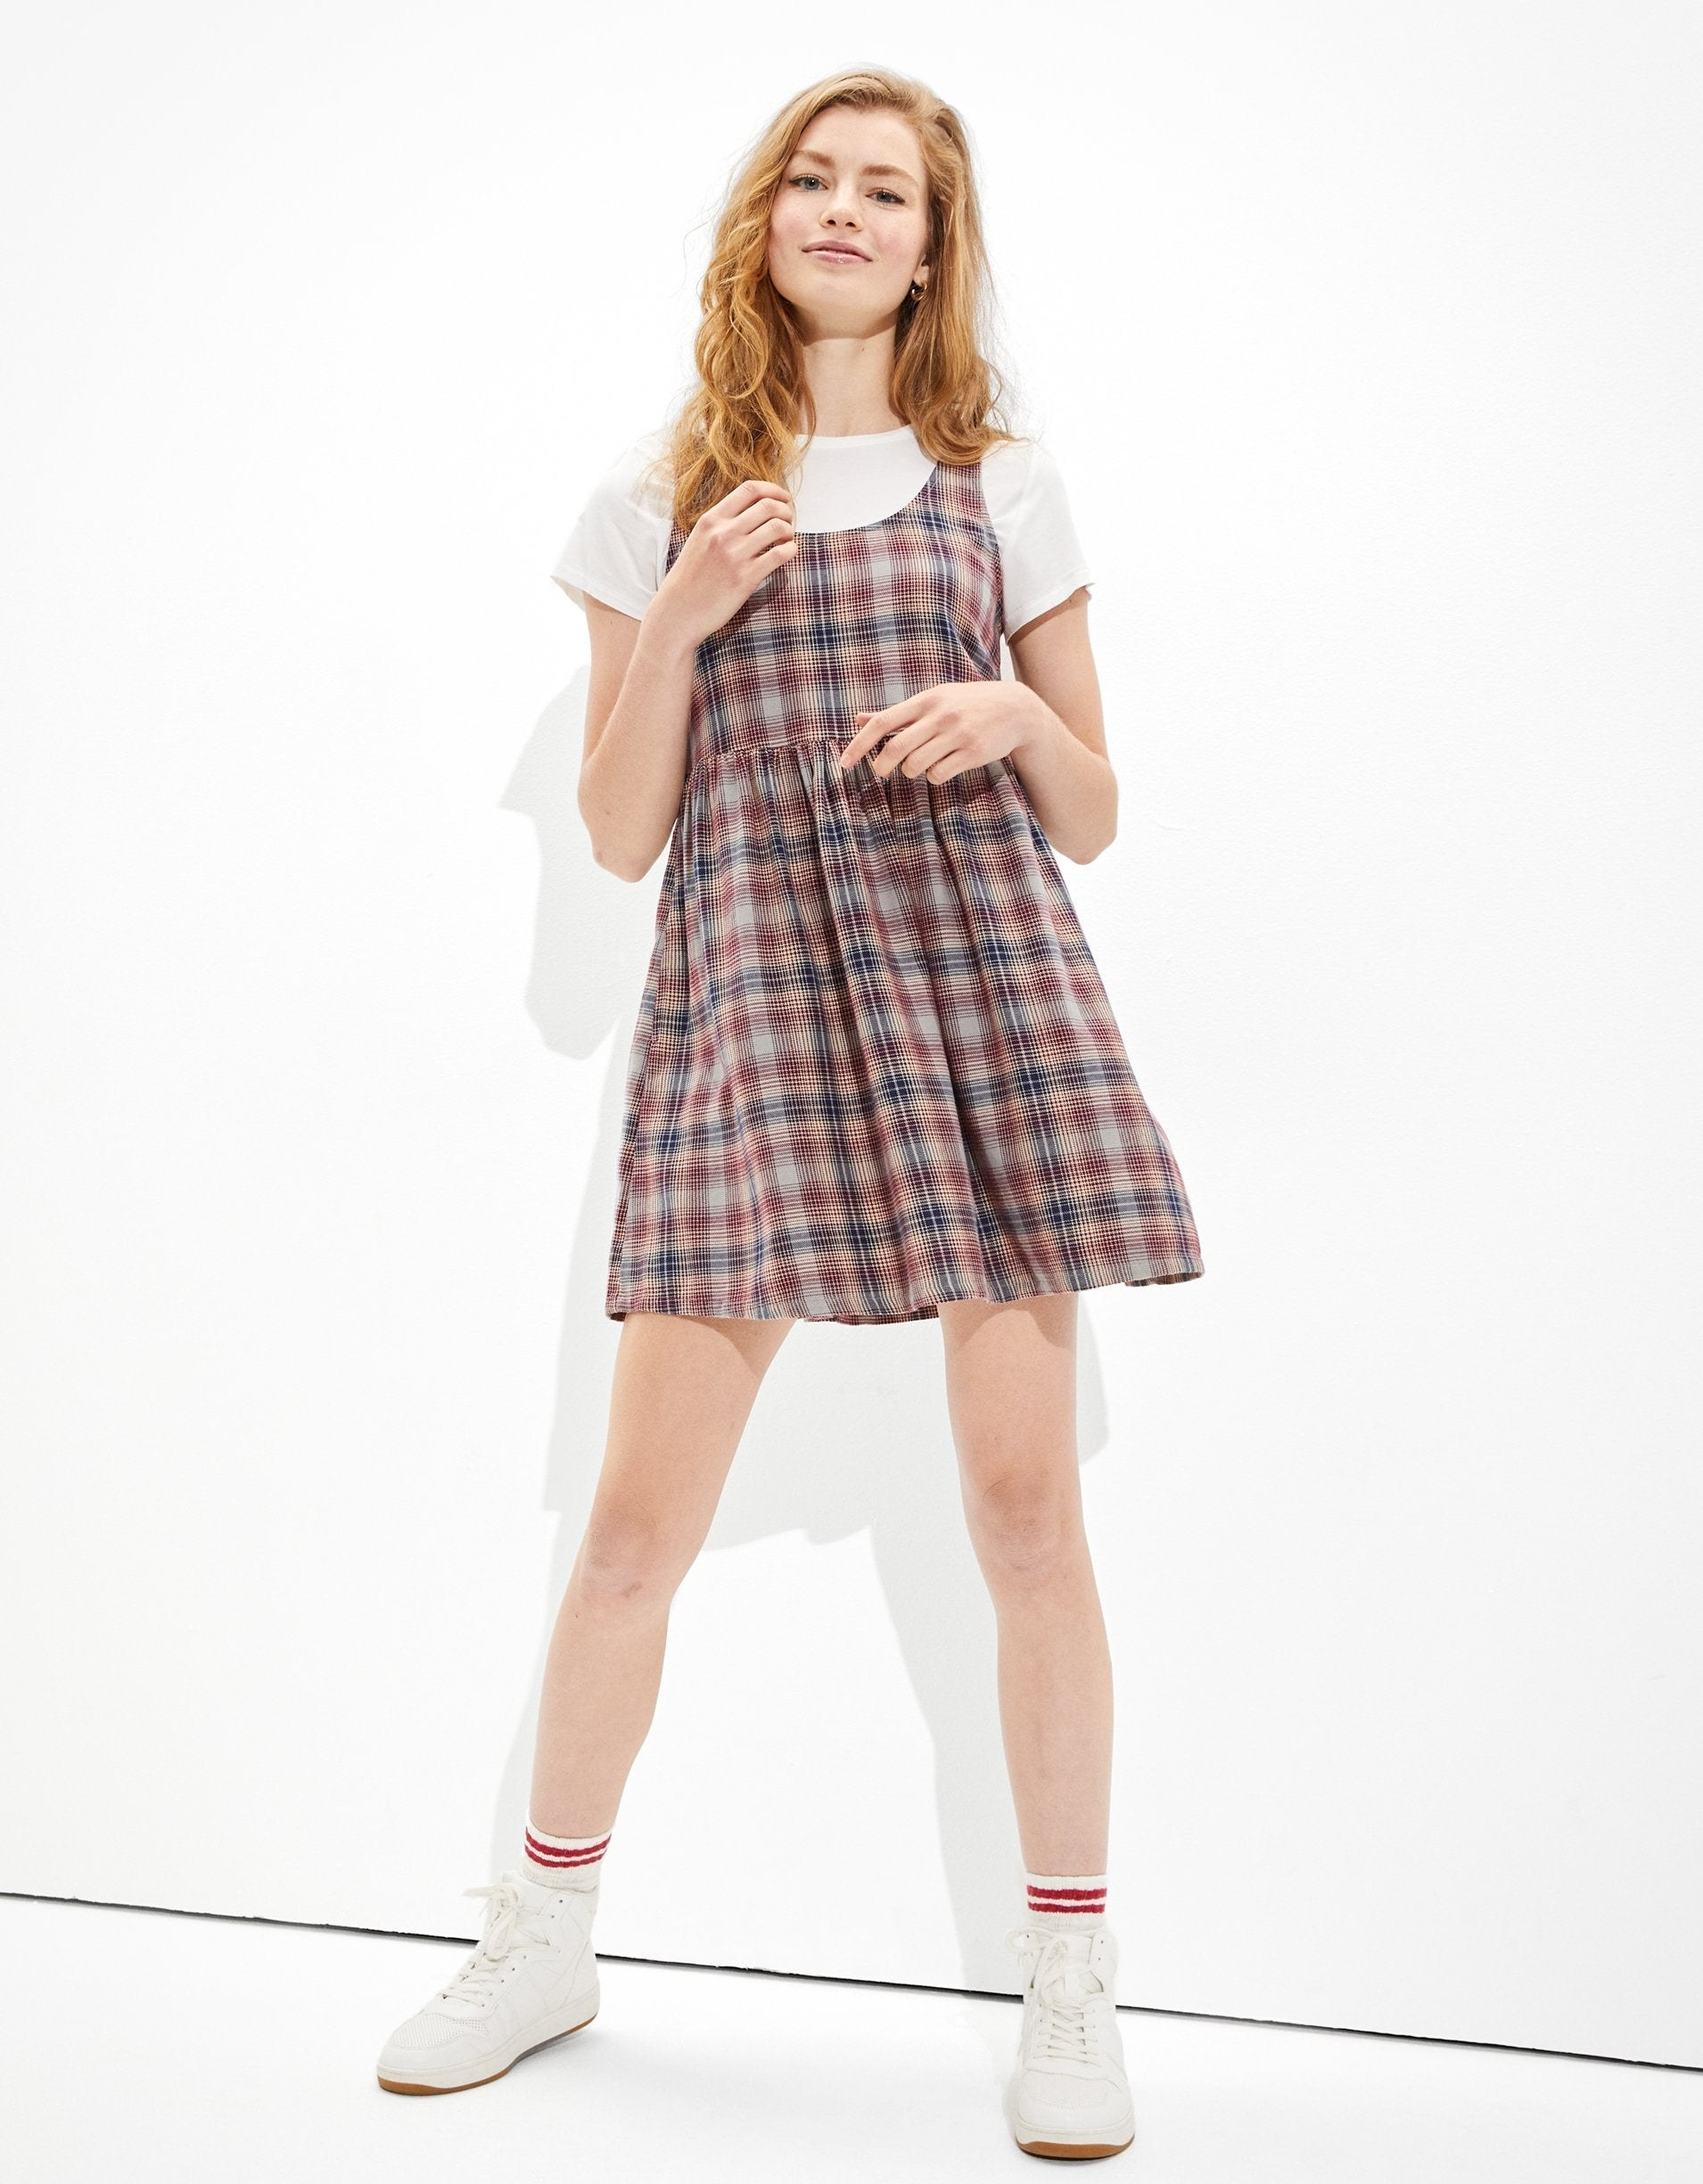 a model wearing a red and black plaid dress over a white tee